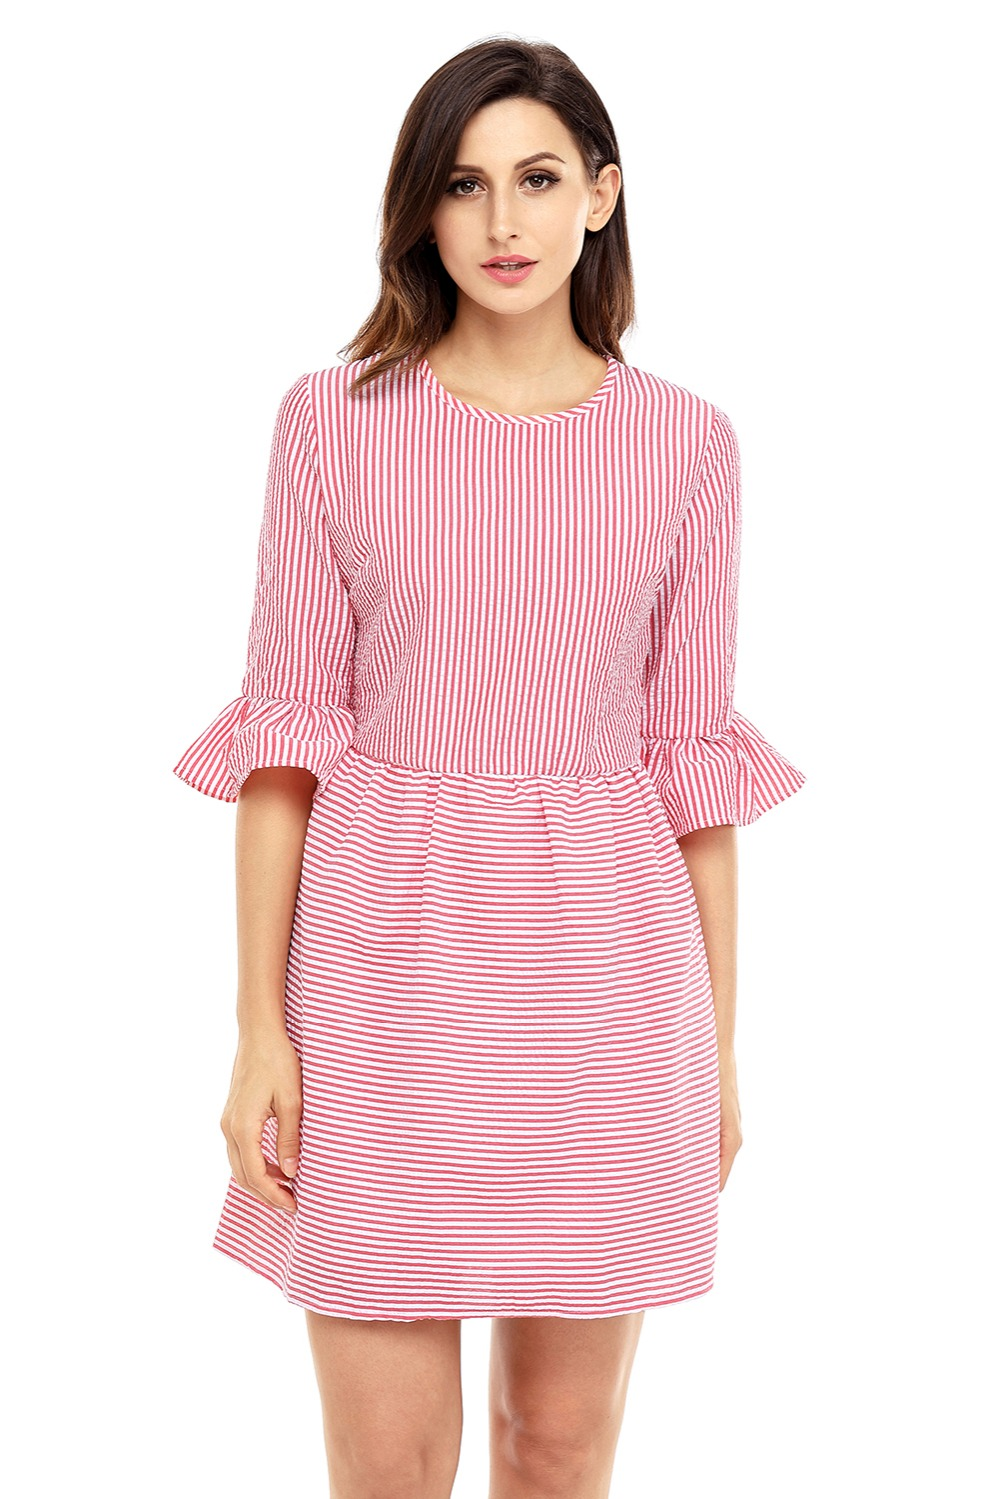 681b3d9cbc2 Shirt dress women stripes Flounce Seersucker Dress bell sleeves Cute preppy  style tank dress korean casual dress women New Sale